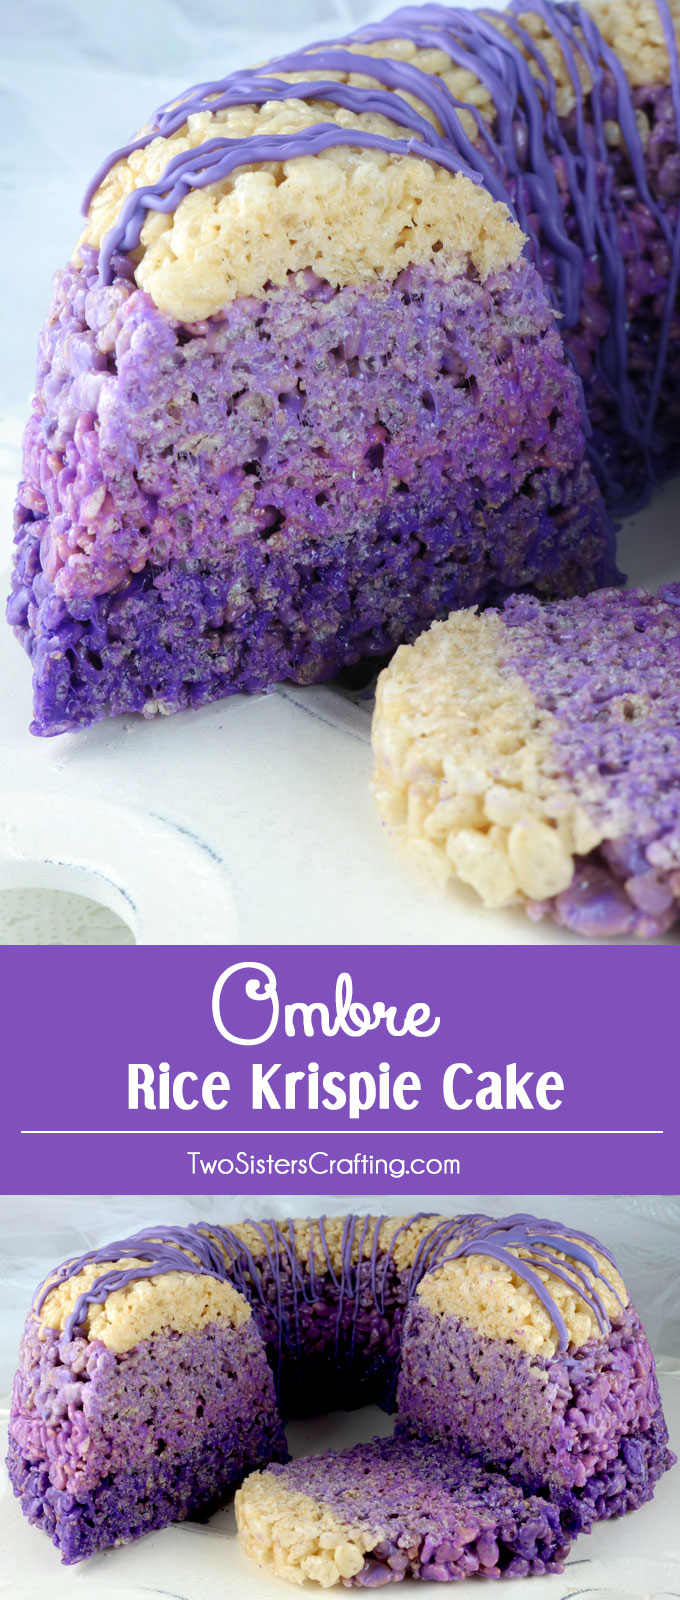 Ombre Rice Krispie Cake - gorgeous, delicious and unique! This lovely purple ombre dessert will be a hit with your family or your party guests beacause who doesn't love Rice Krispie Treats? So yummy and so easy to make you'll want to make this yummy cake again and again. Pin for later and follow us for more great Rice Krispie Treats recipes.